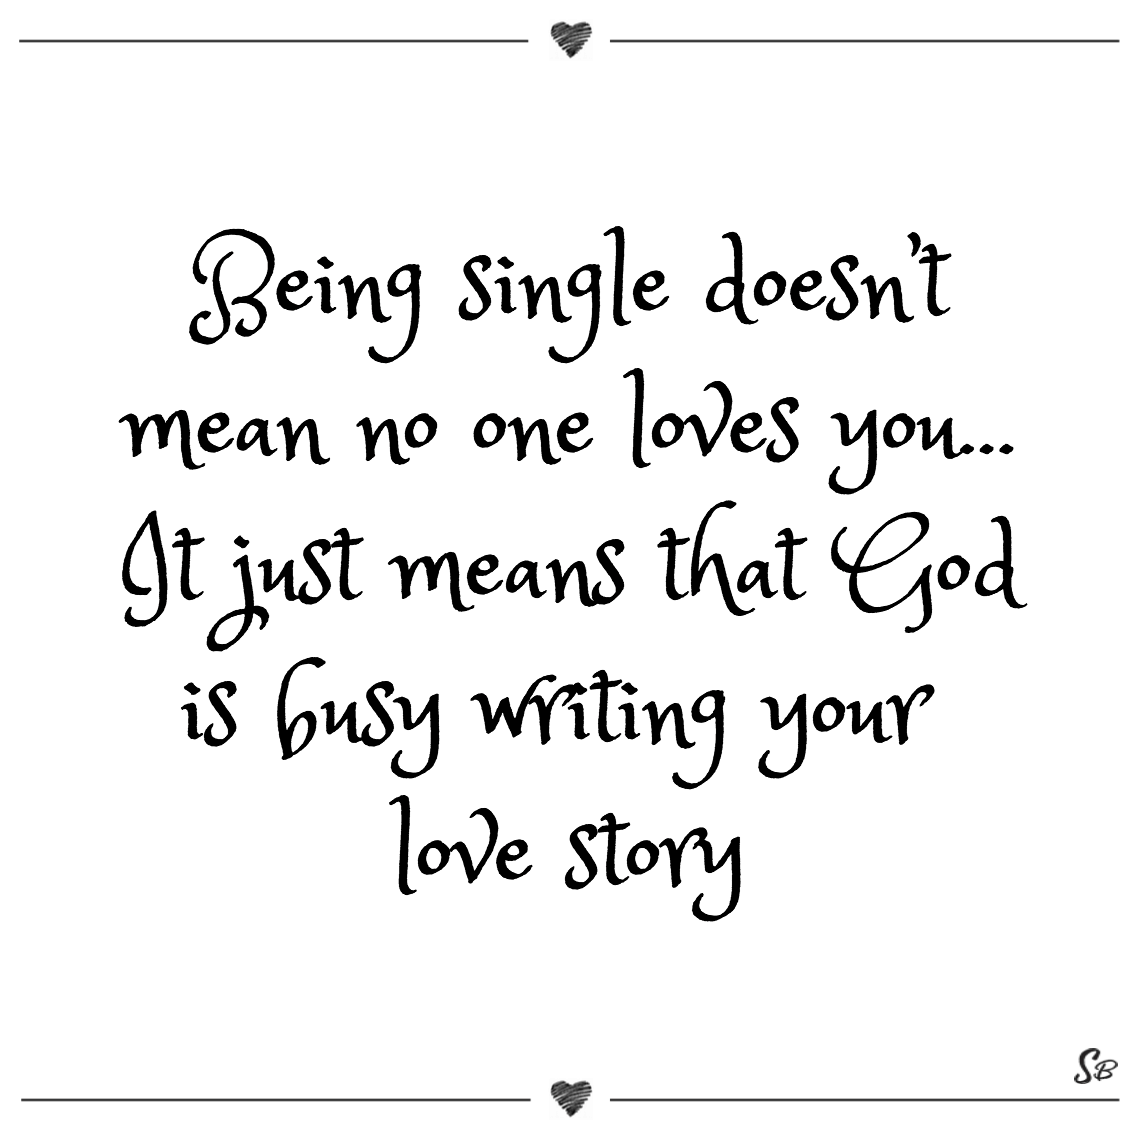 Being single doesn't mean no one loves you… it just means that god is busy writing your love story